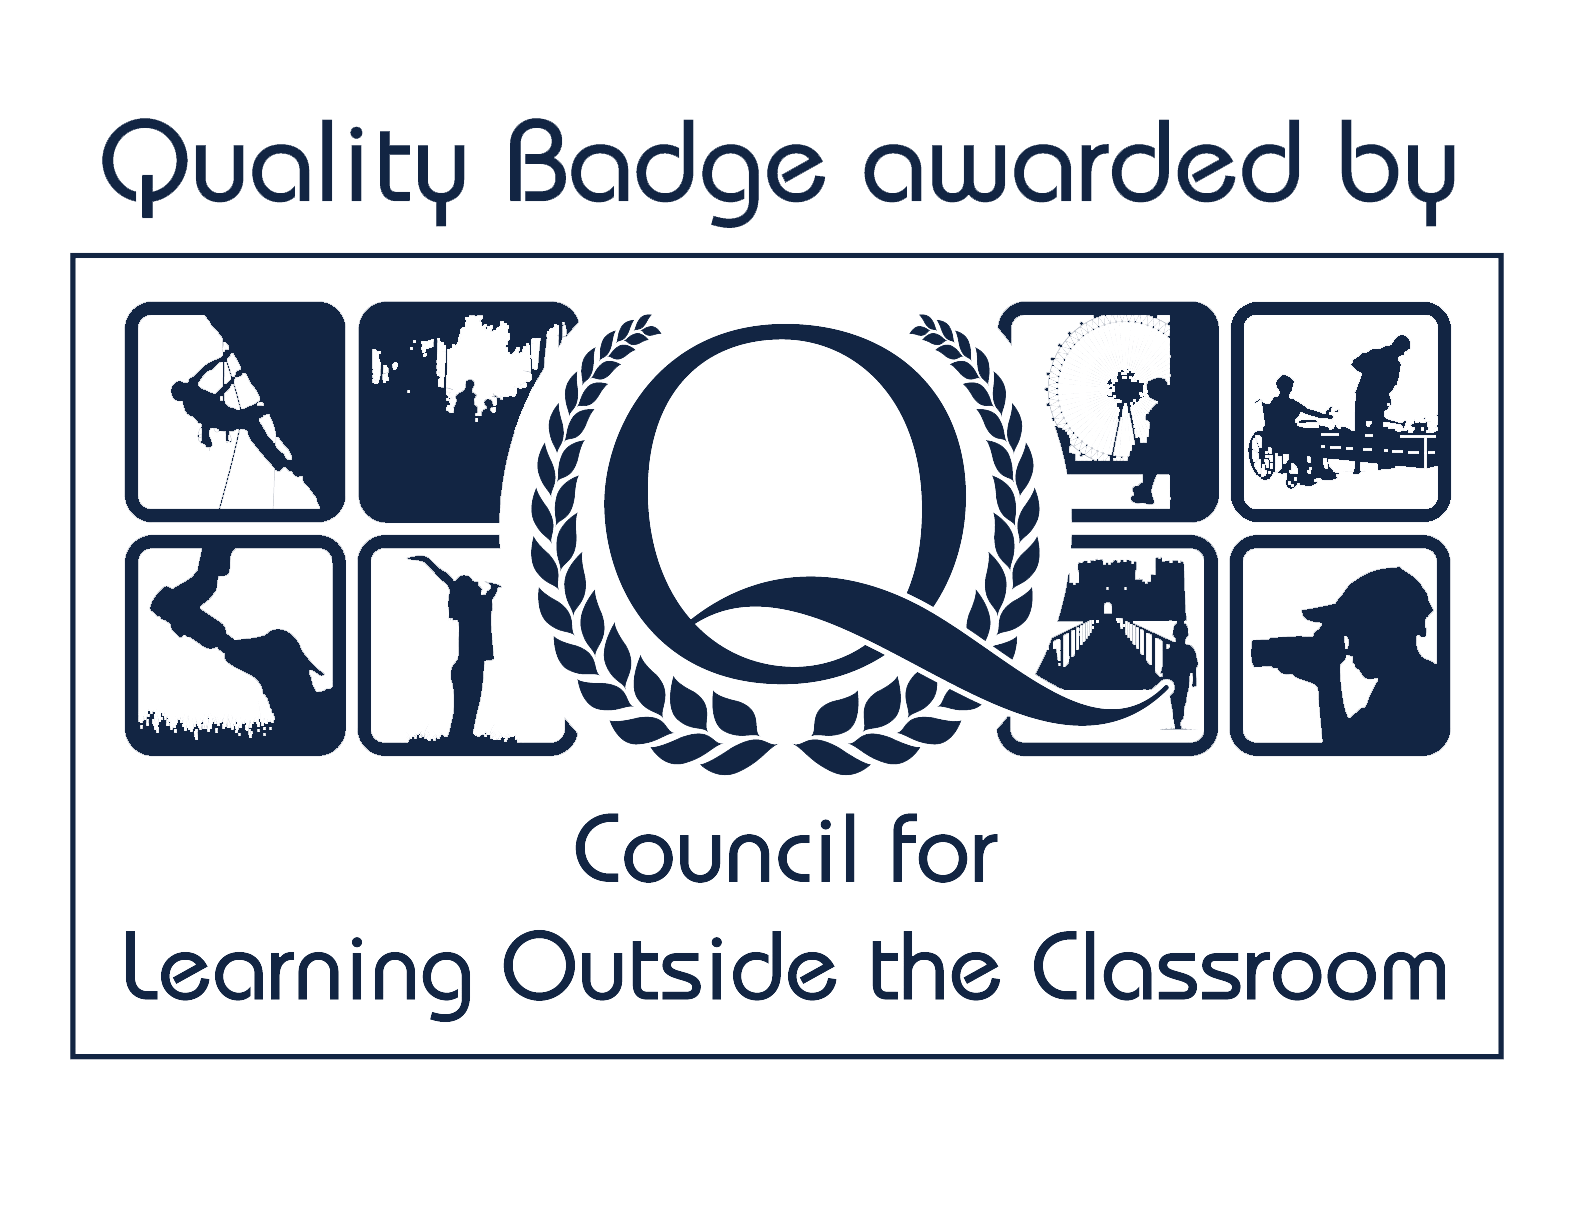 Quality Badge - Council for Learning Outside the Classroom